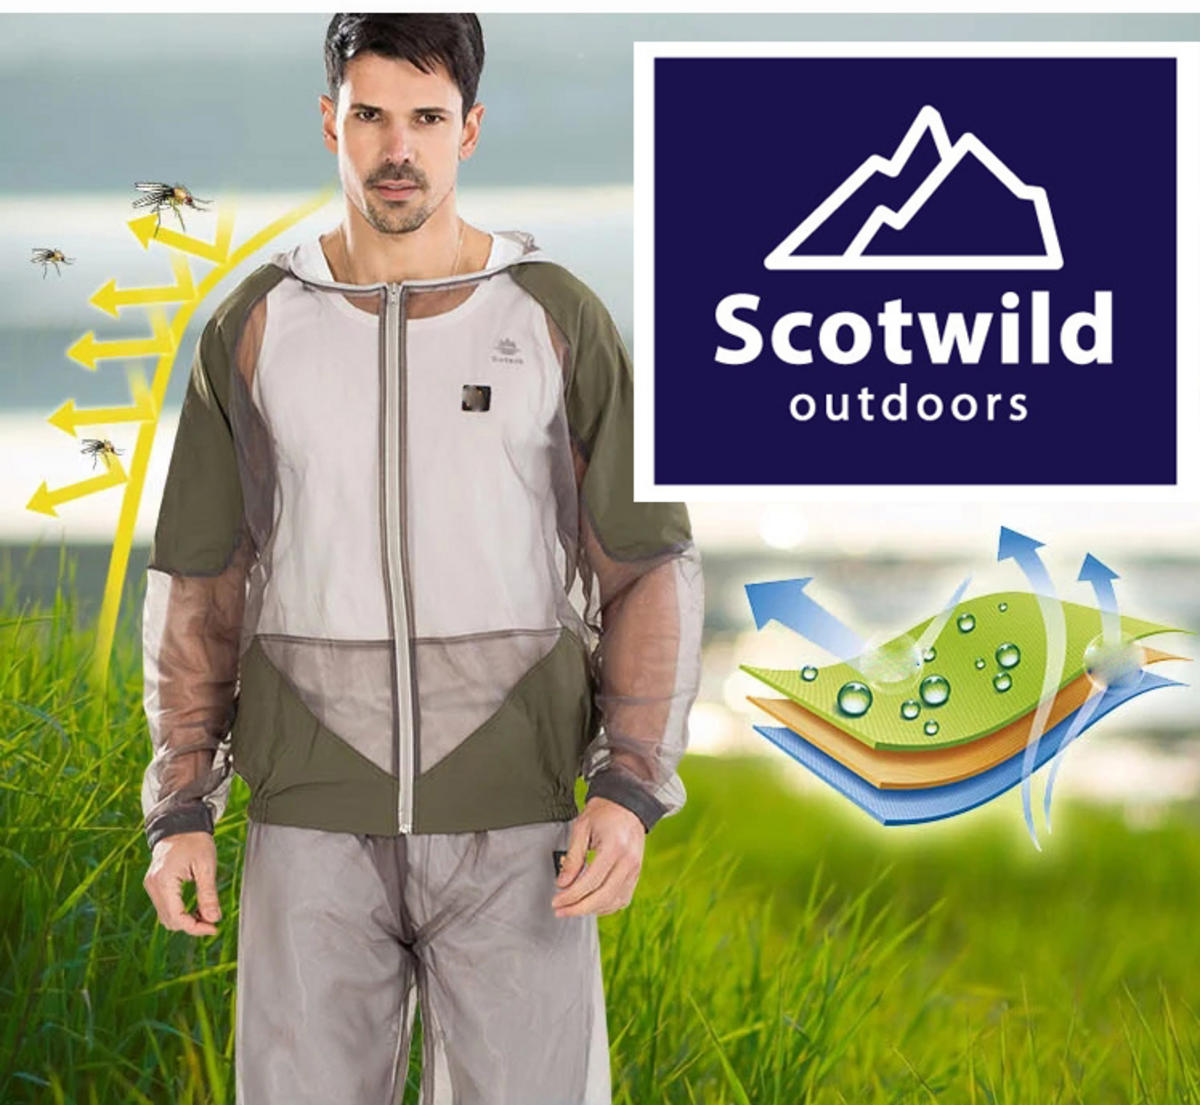 SCOTWILD MIDGE MOSQUITO SUIT COMPLETE PROTECTION FROM BITING INSECTS